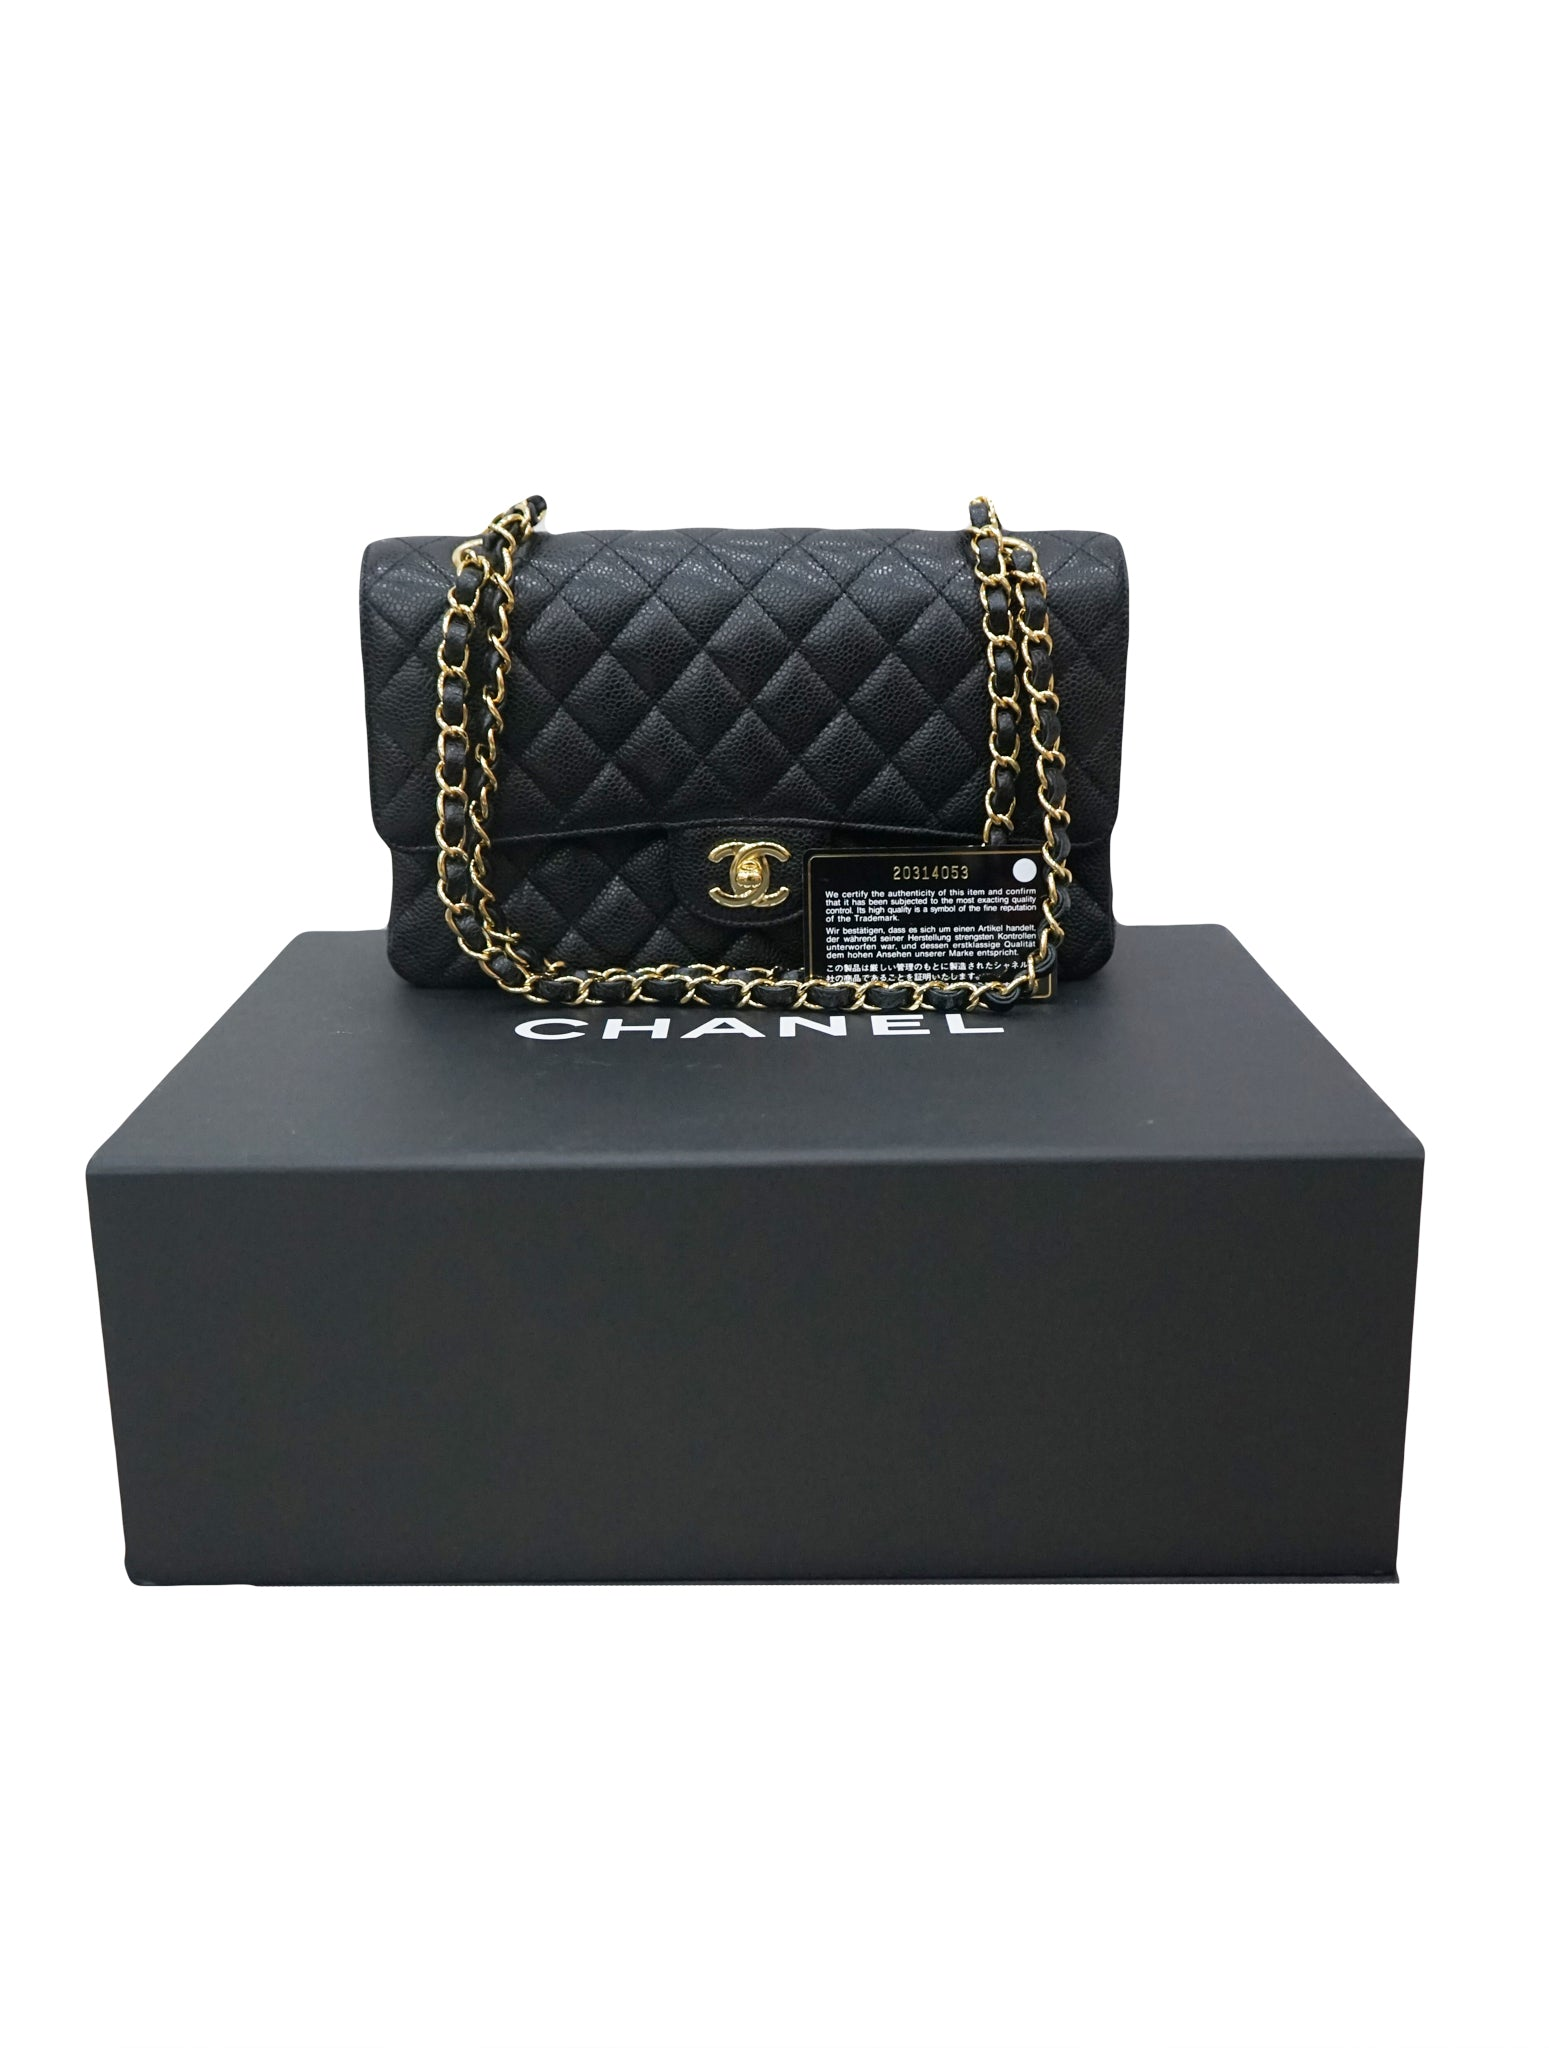 QUILTED CAVIAR LEATHER DOUBLE FLAP BAG